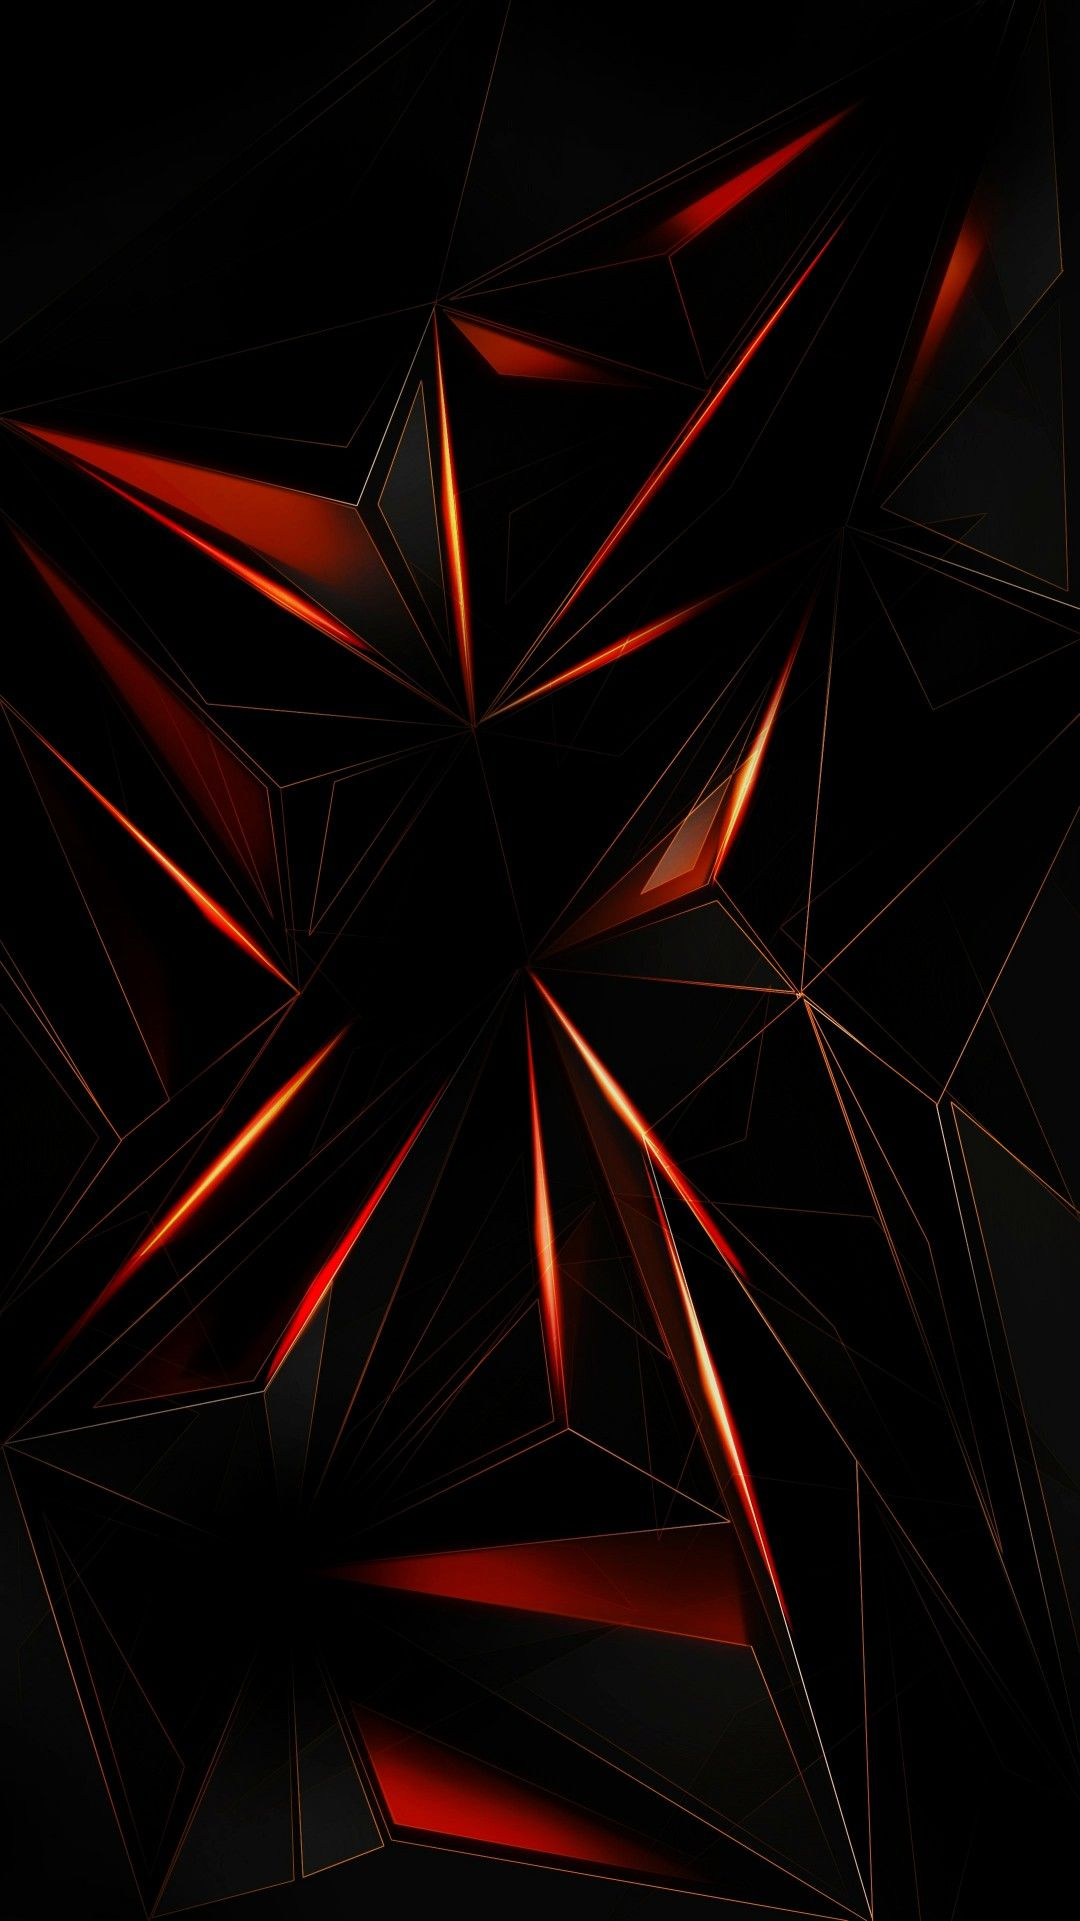 AMOLED Abstract Wallpaper 140 AMOLED Wallpapers Black